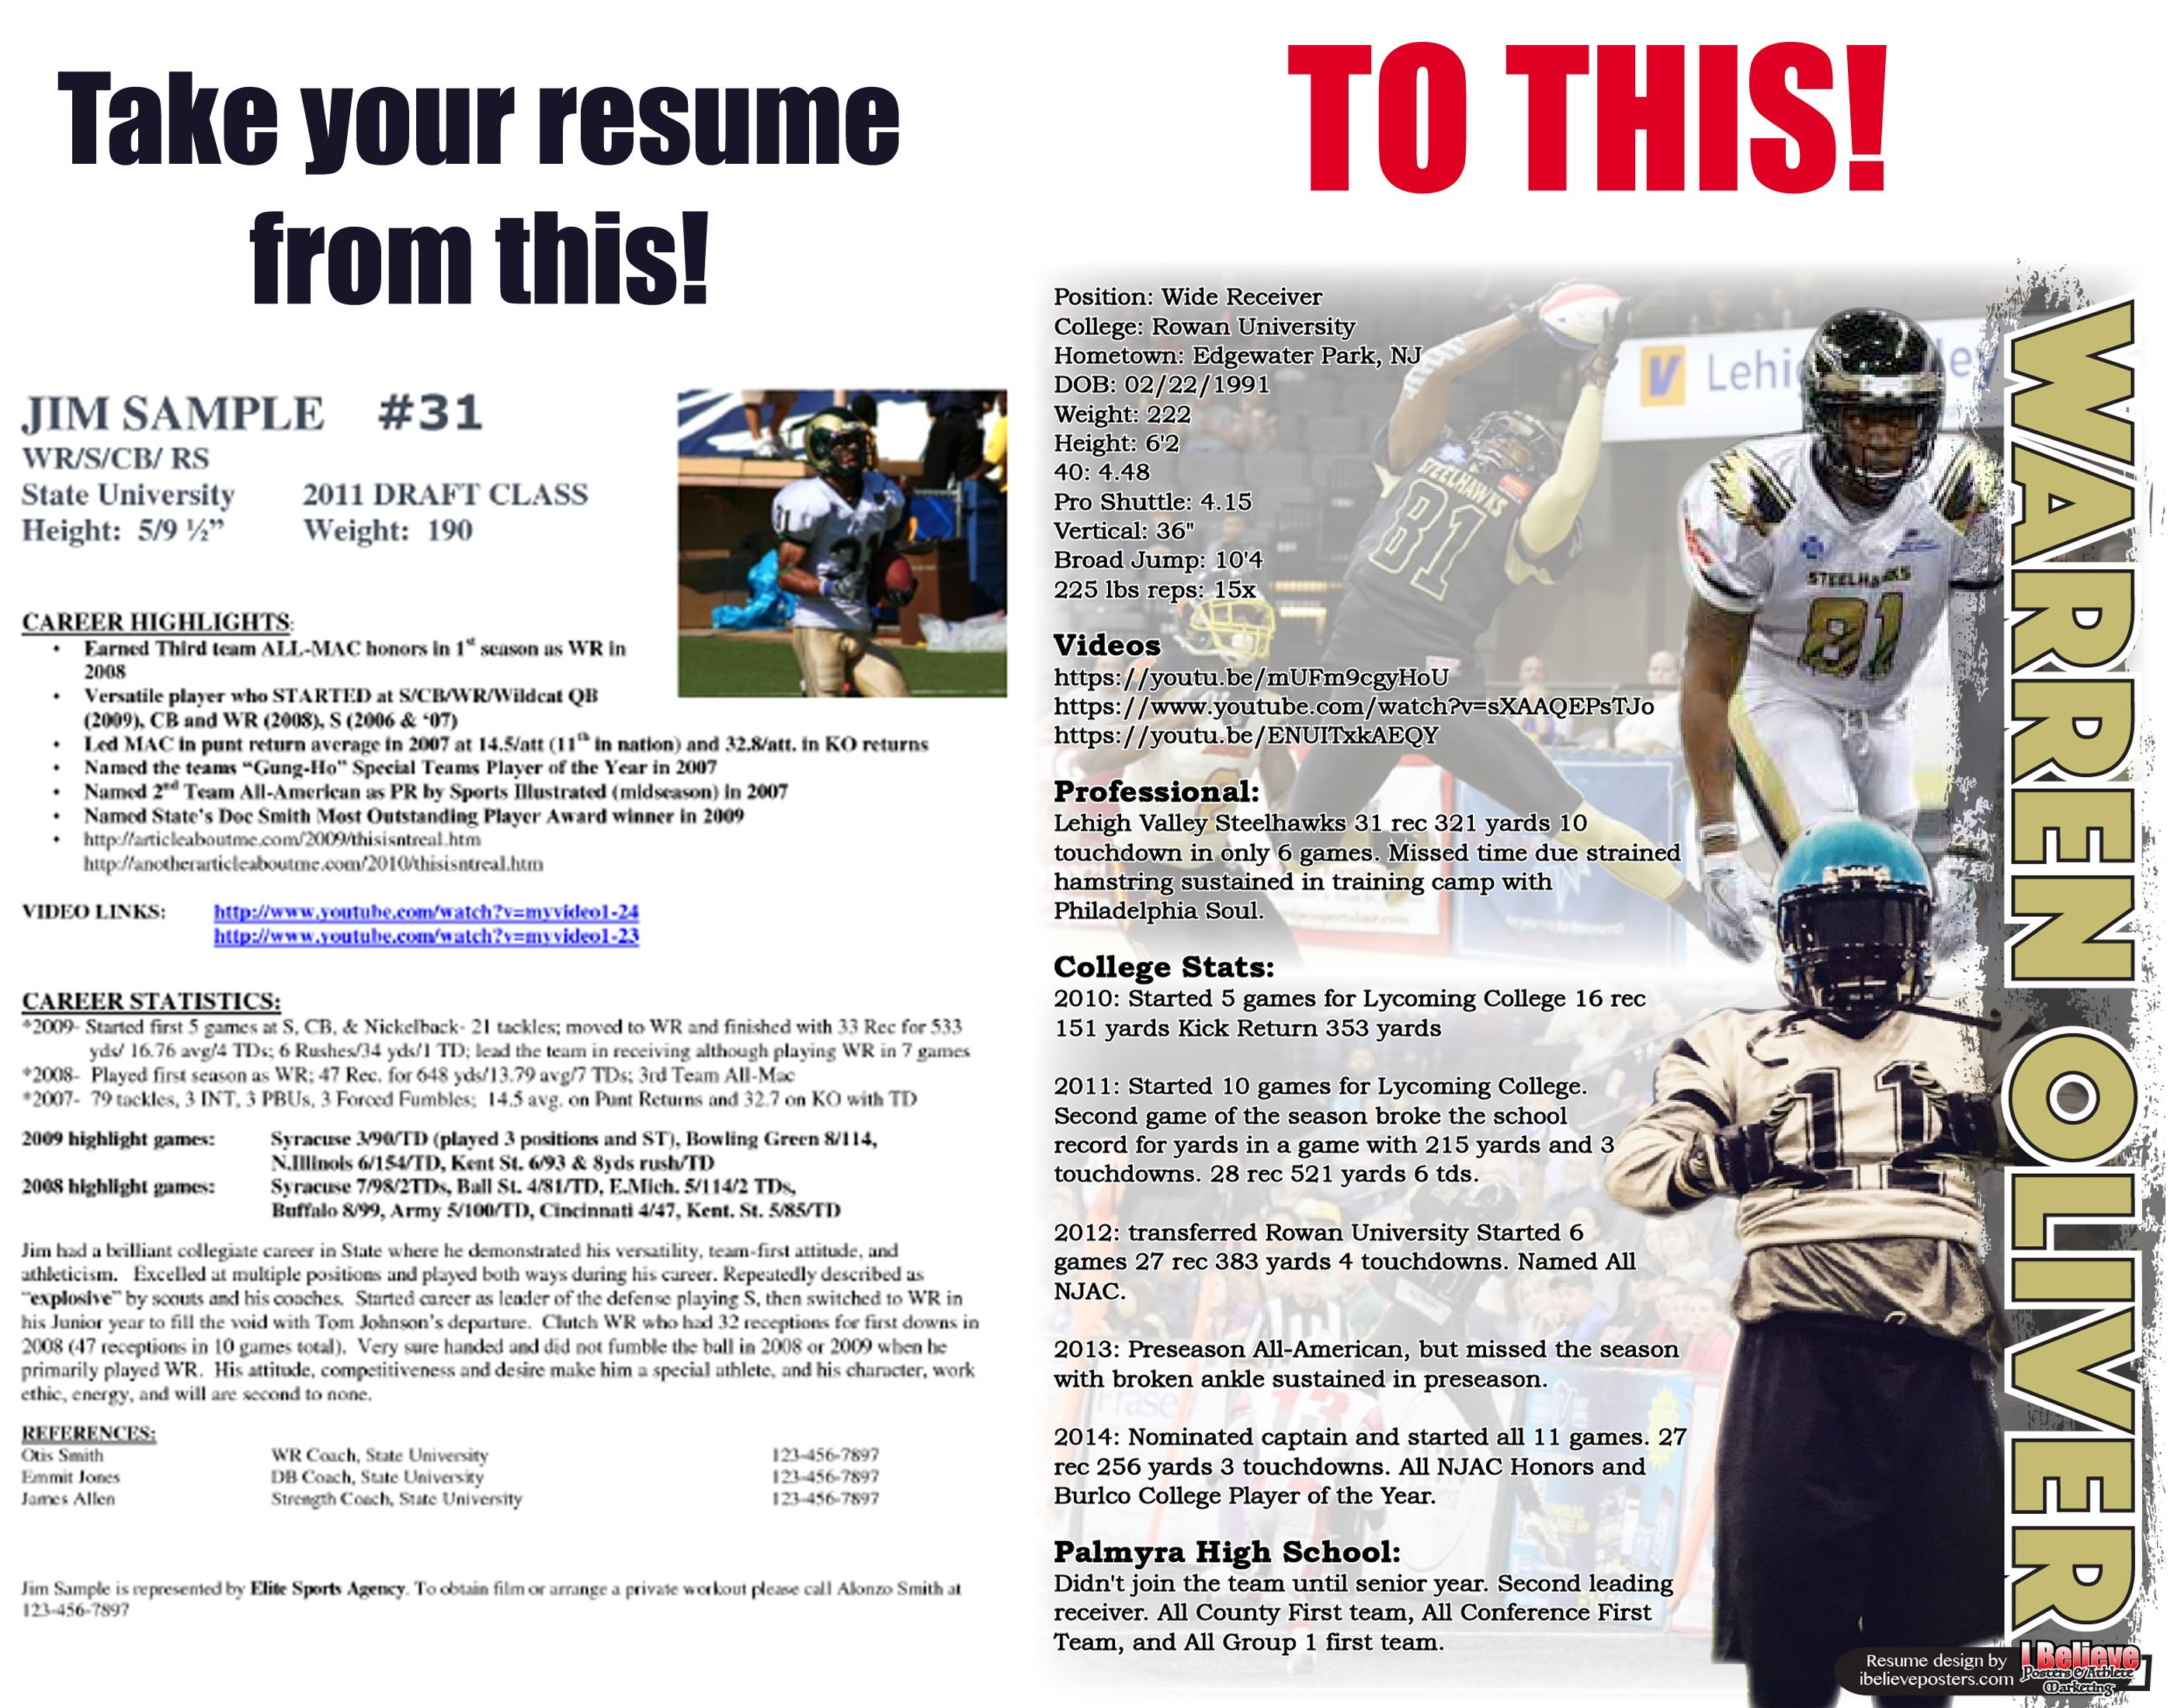 sports resume  athlete resume  recruiting  sports